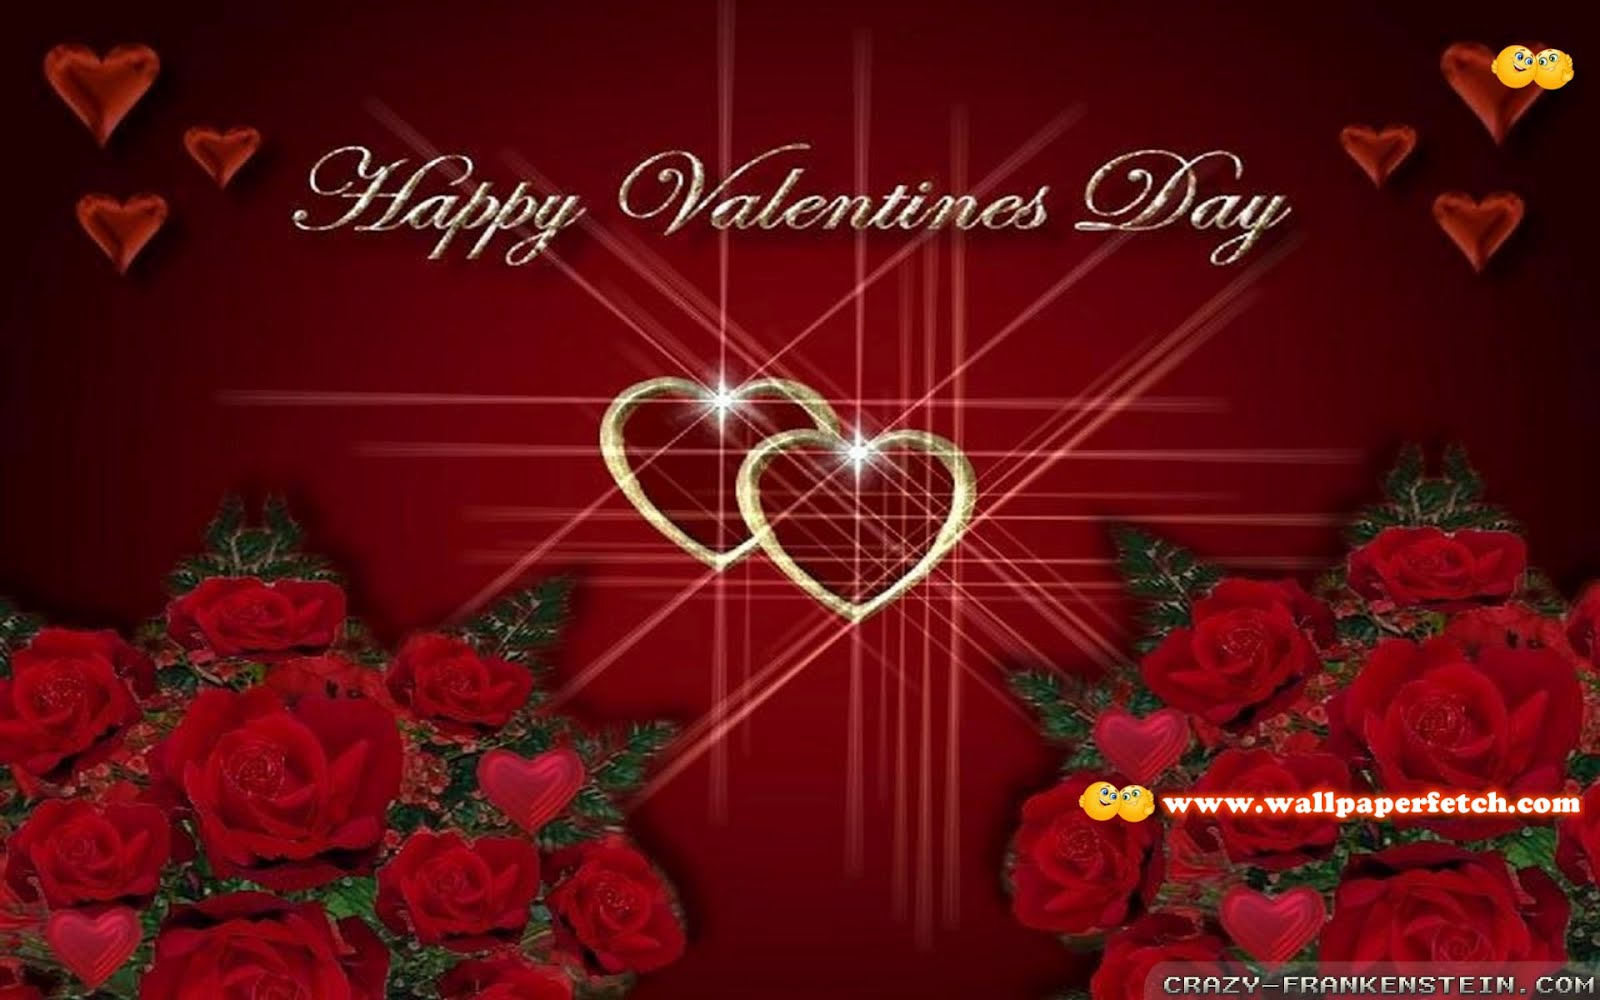 http://3.bp.blogspot.com/-sL4KK1R3r2k/TzaExrEQnaI/AAAAAAAALig/ZN6Ndi9Gpq0/s1600/love-heart-shaped-red-valentine-romance-wallpapers-1920x1200.jpg